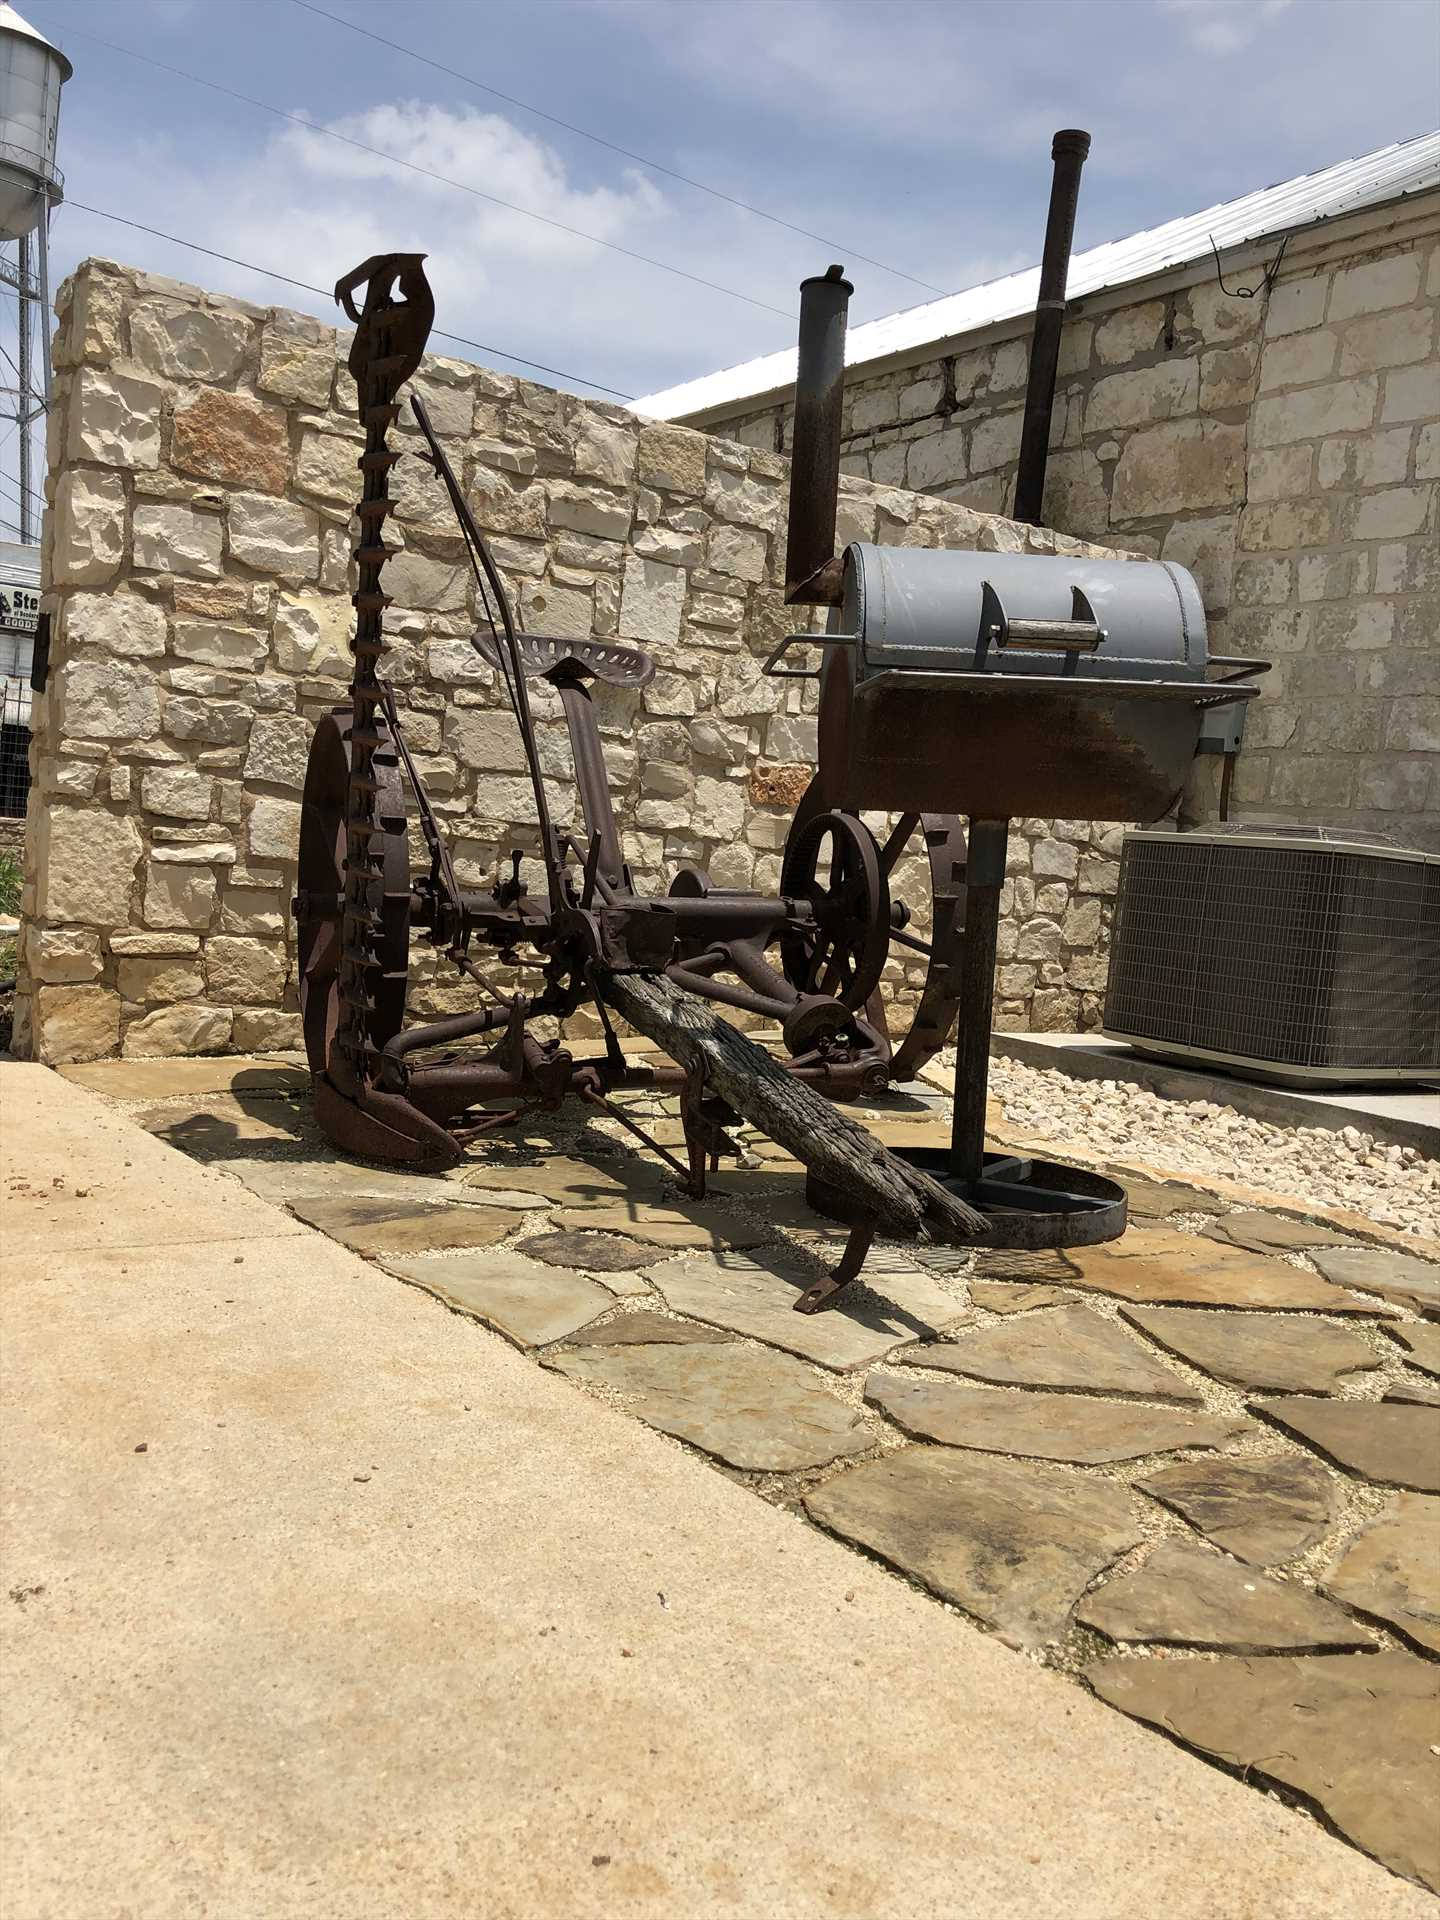 For those looking to whip up a feast at home, there's a charcoal grill on the grounds for you.